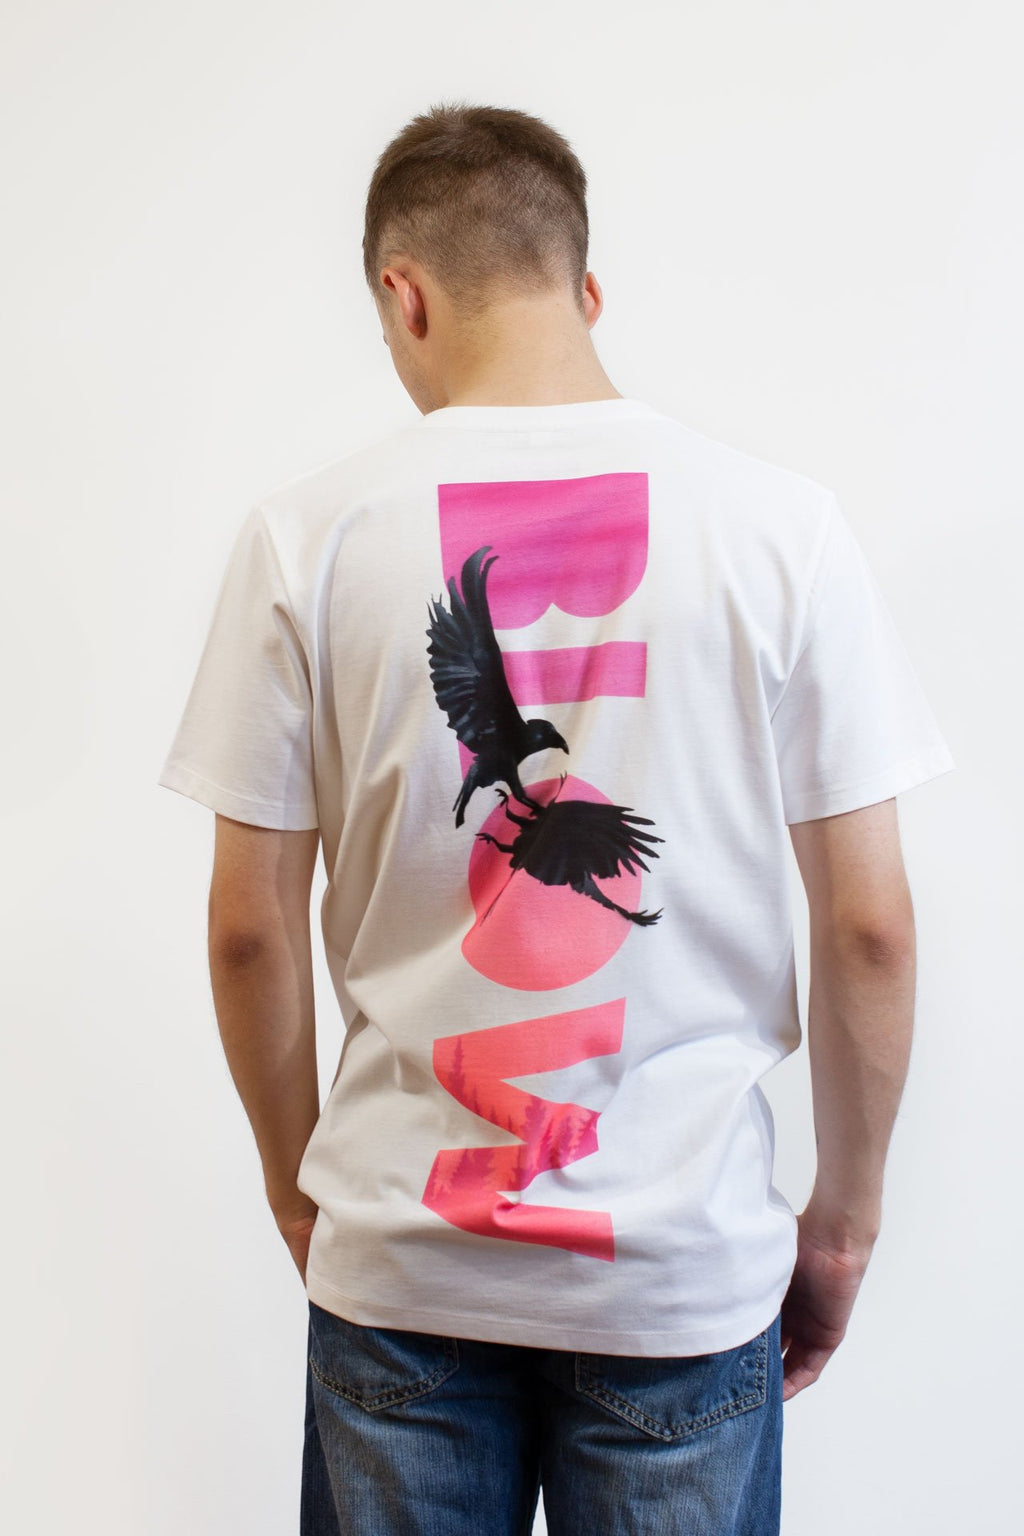 THE BLOW - Unisex premium short sleeve t-shirt